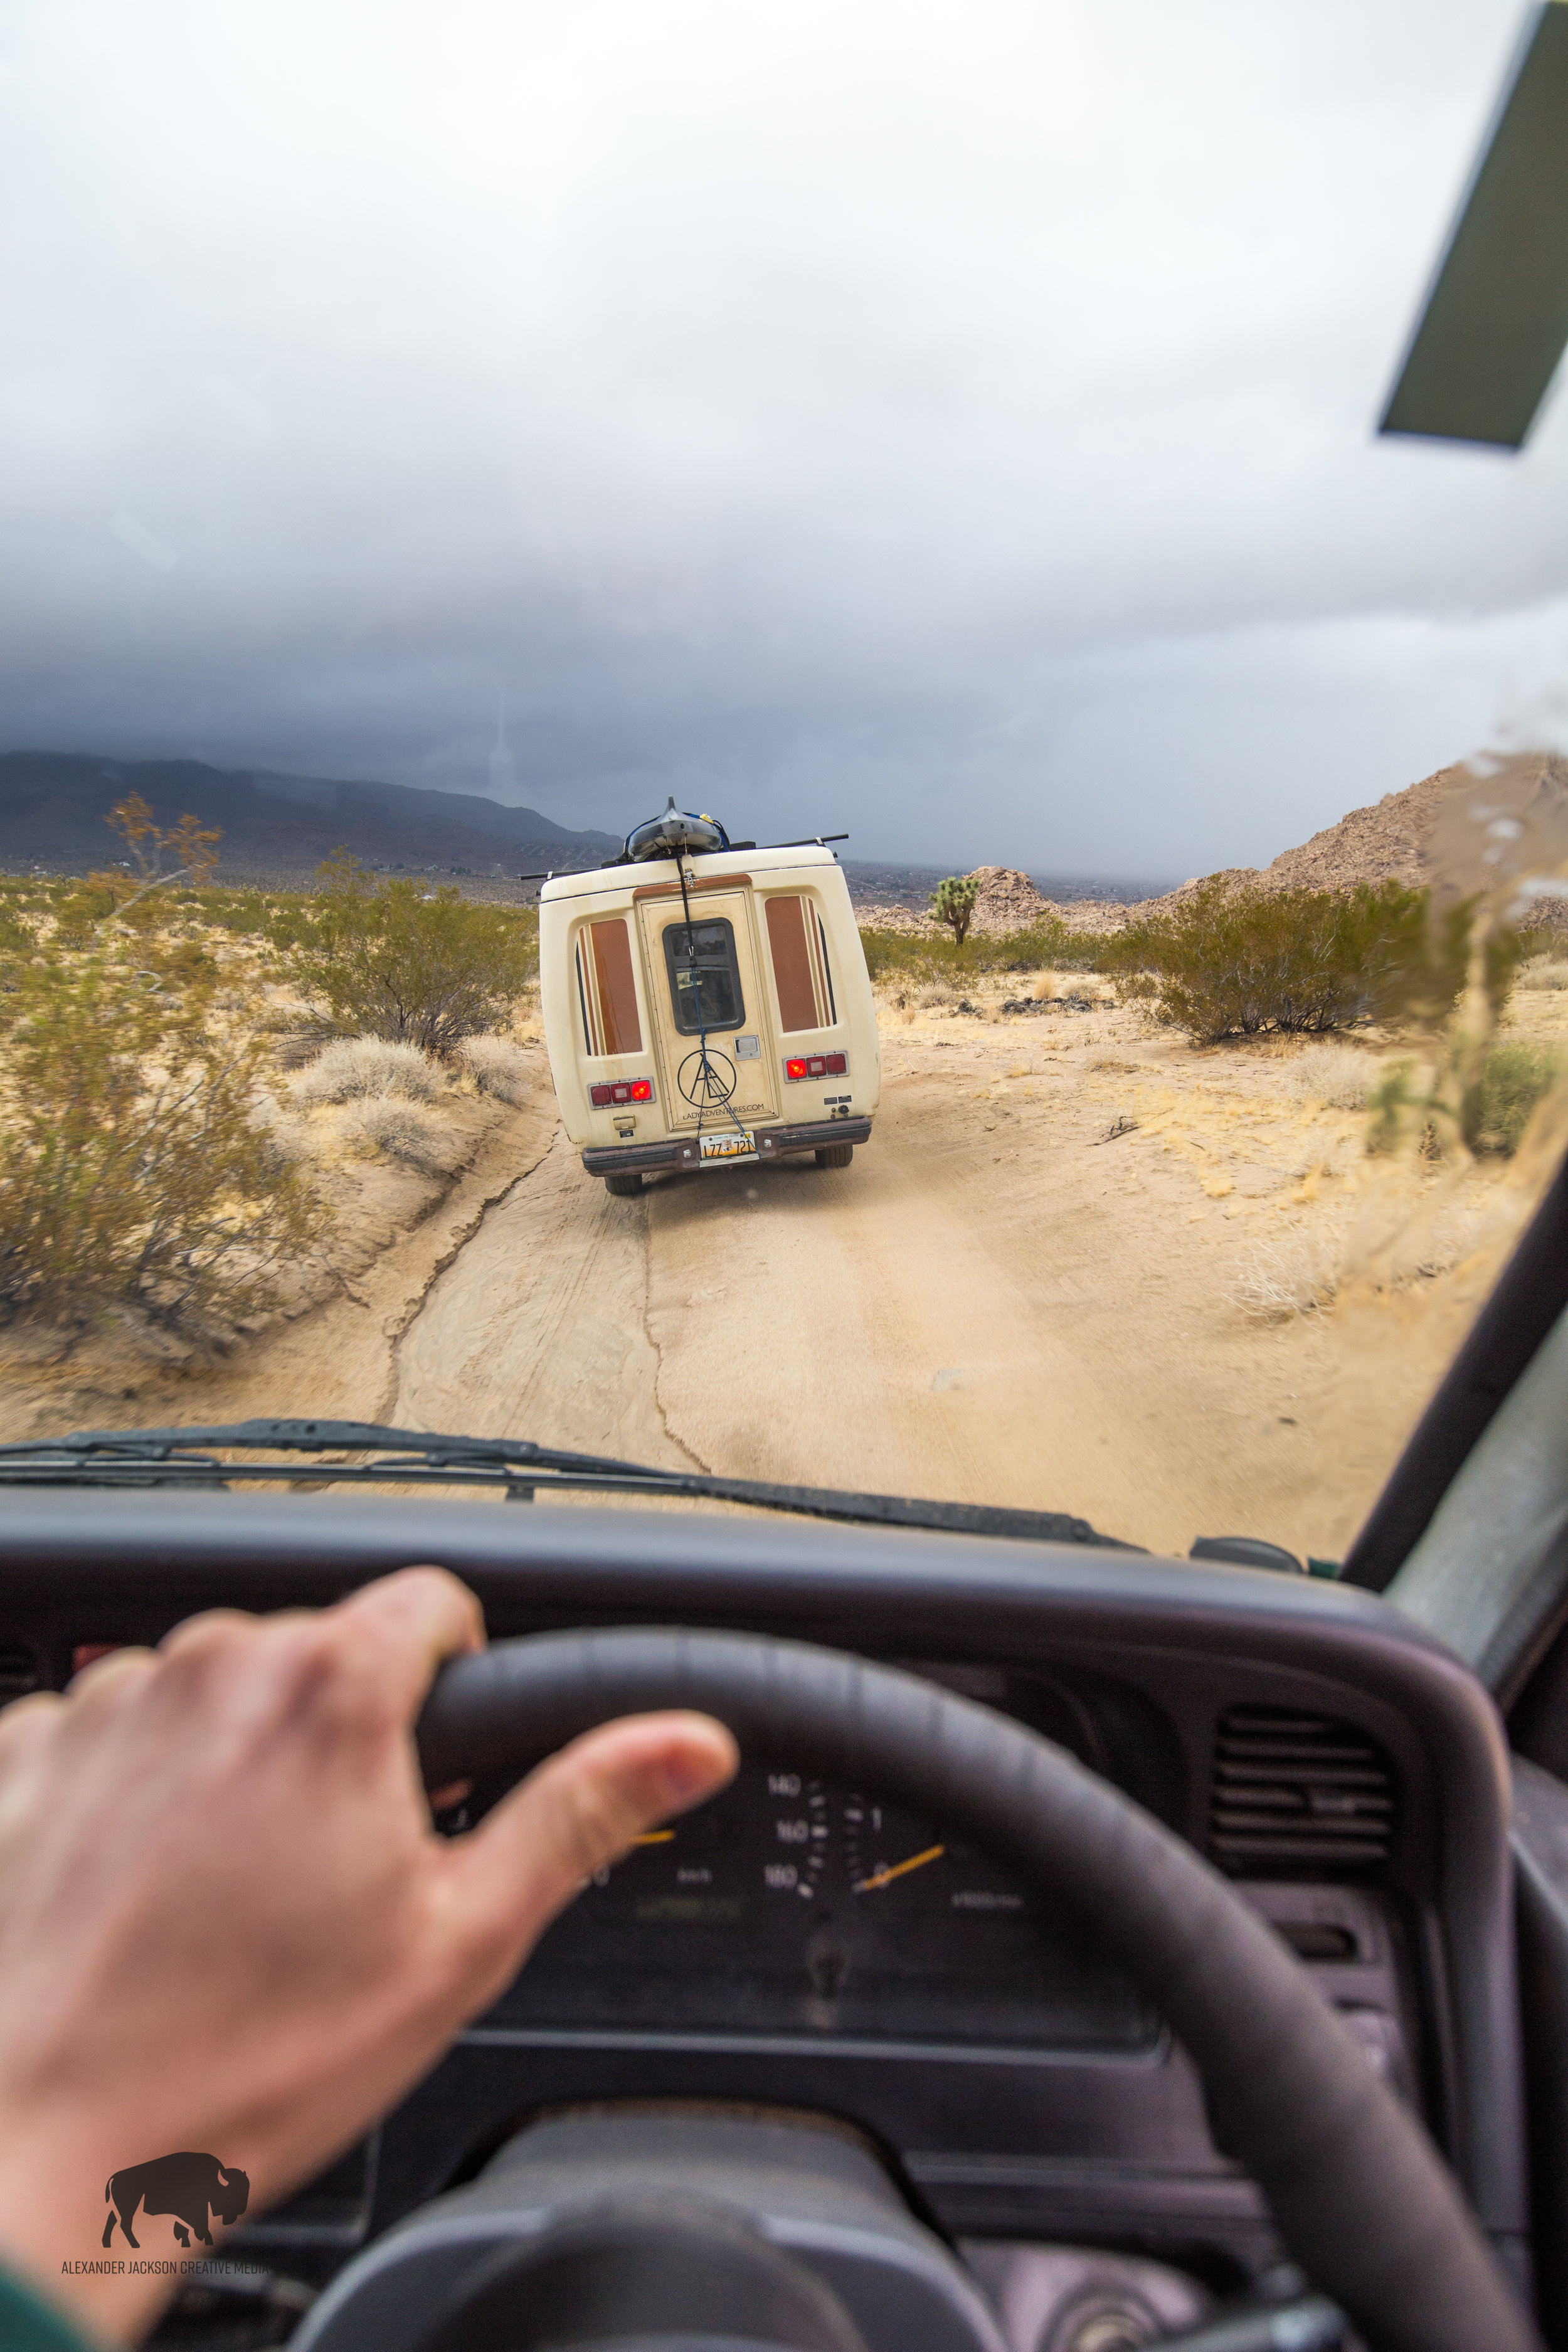 Following Genevieve out to Joshua Tree. I got the low down on the climber hang out and best burrito's in Desert Hotsprings that day...mmmm, I long for those burritos.